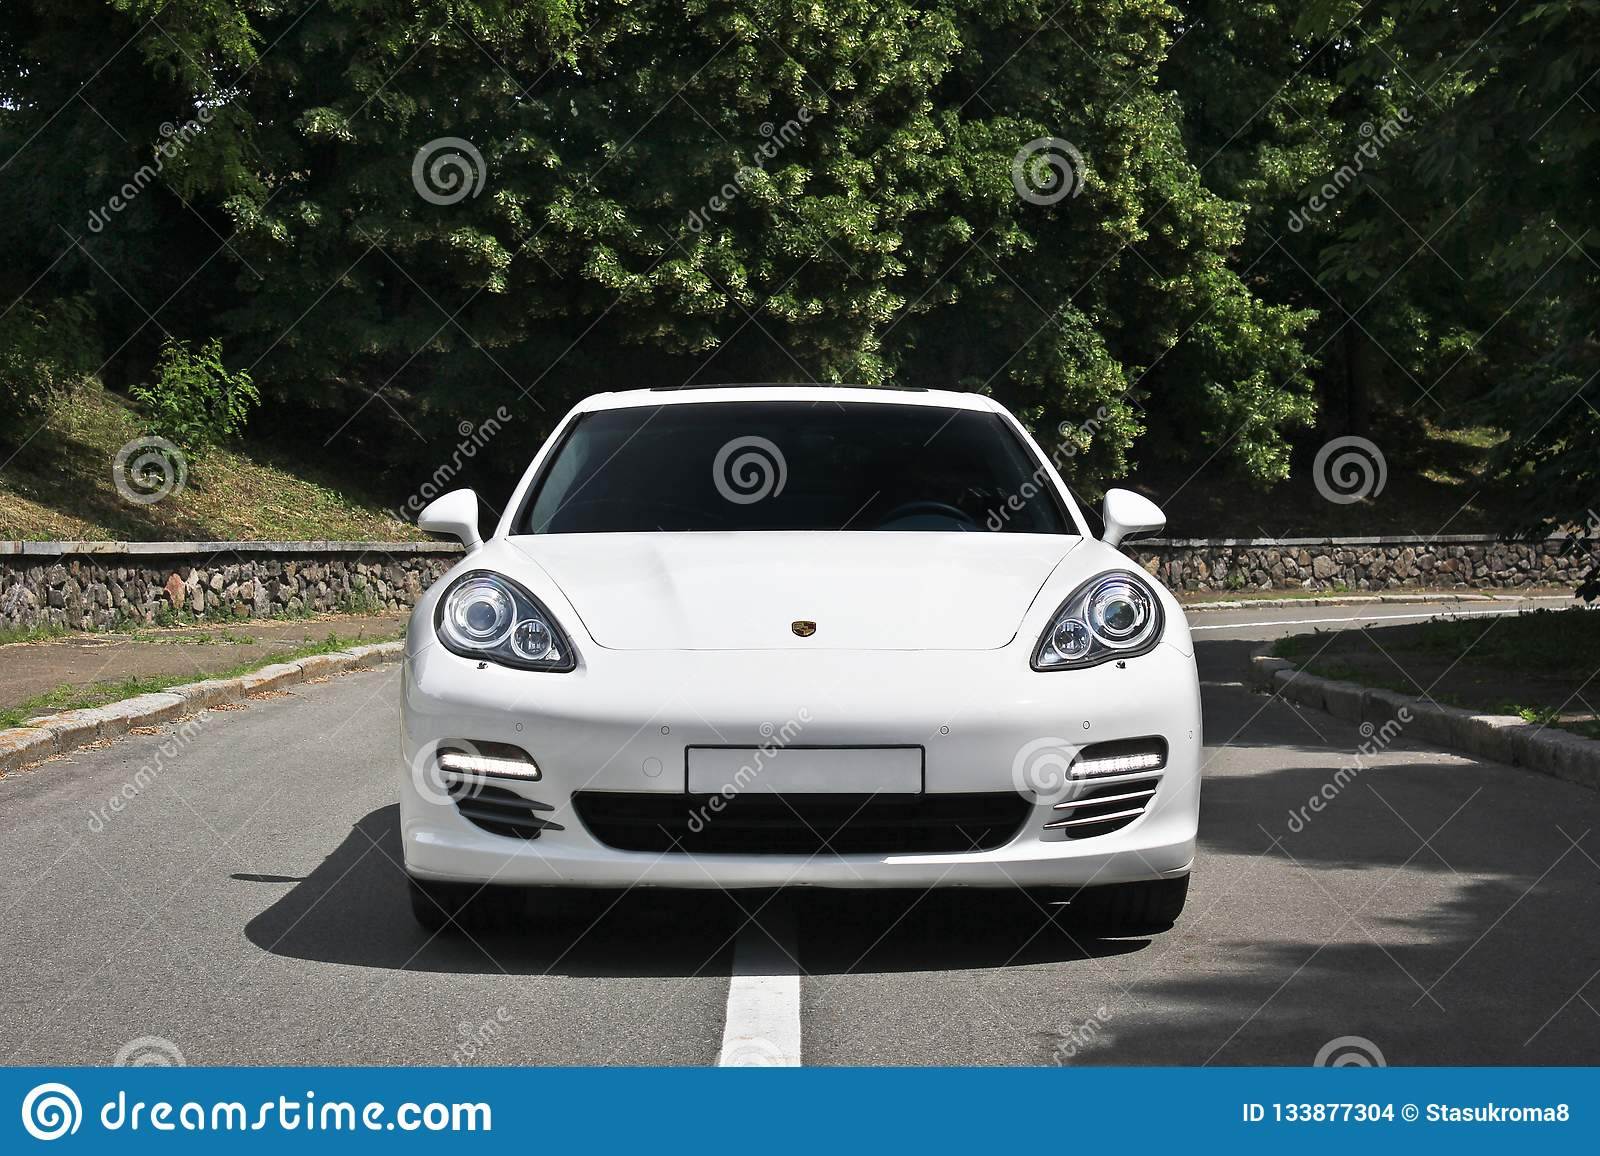 Kyiv, Ukraine, June 25, 2015; White Porsche. Porsche Panamera on the background of trees